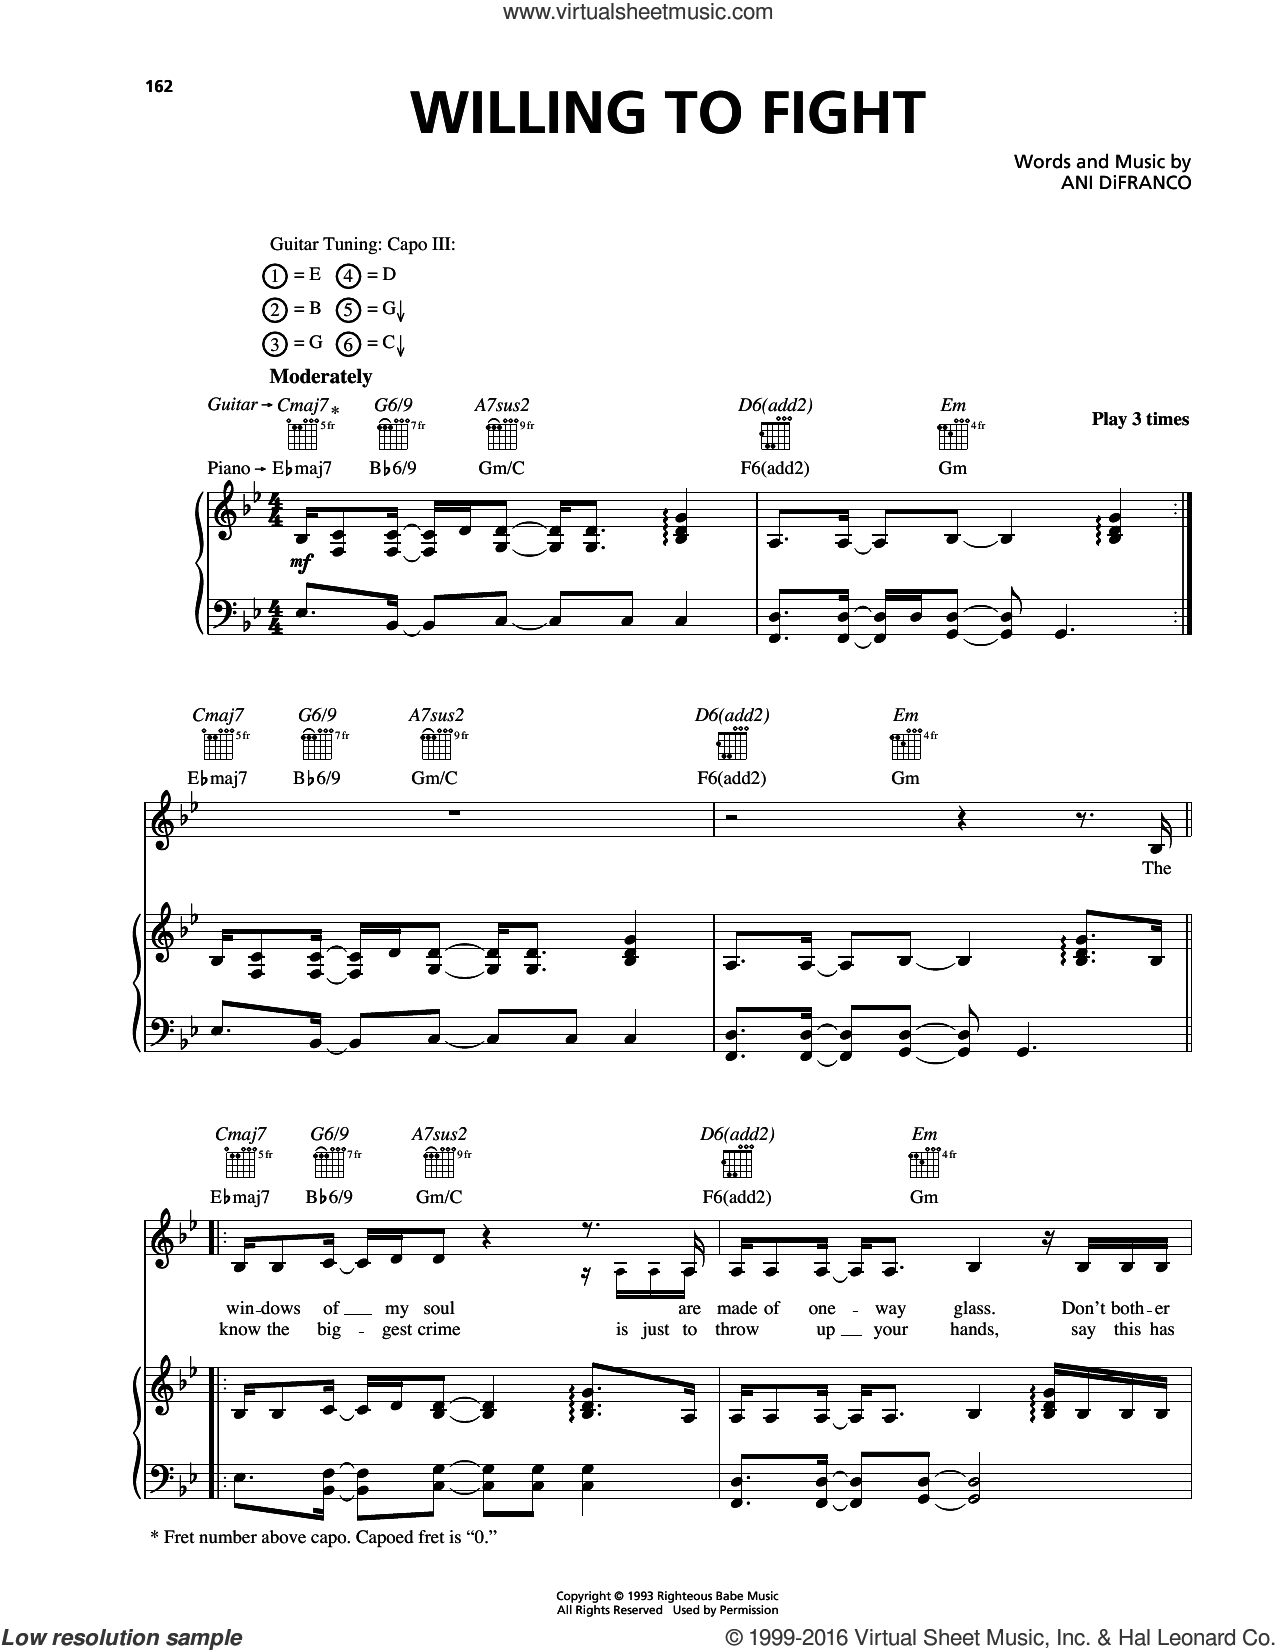 Willing To Fight sheet music for voice, piano or guitar by Ani DiFranco. Score Image Preview.